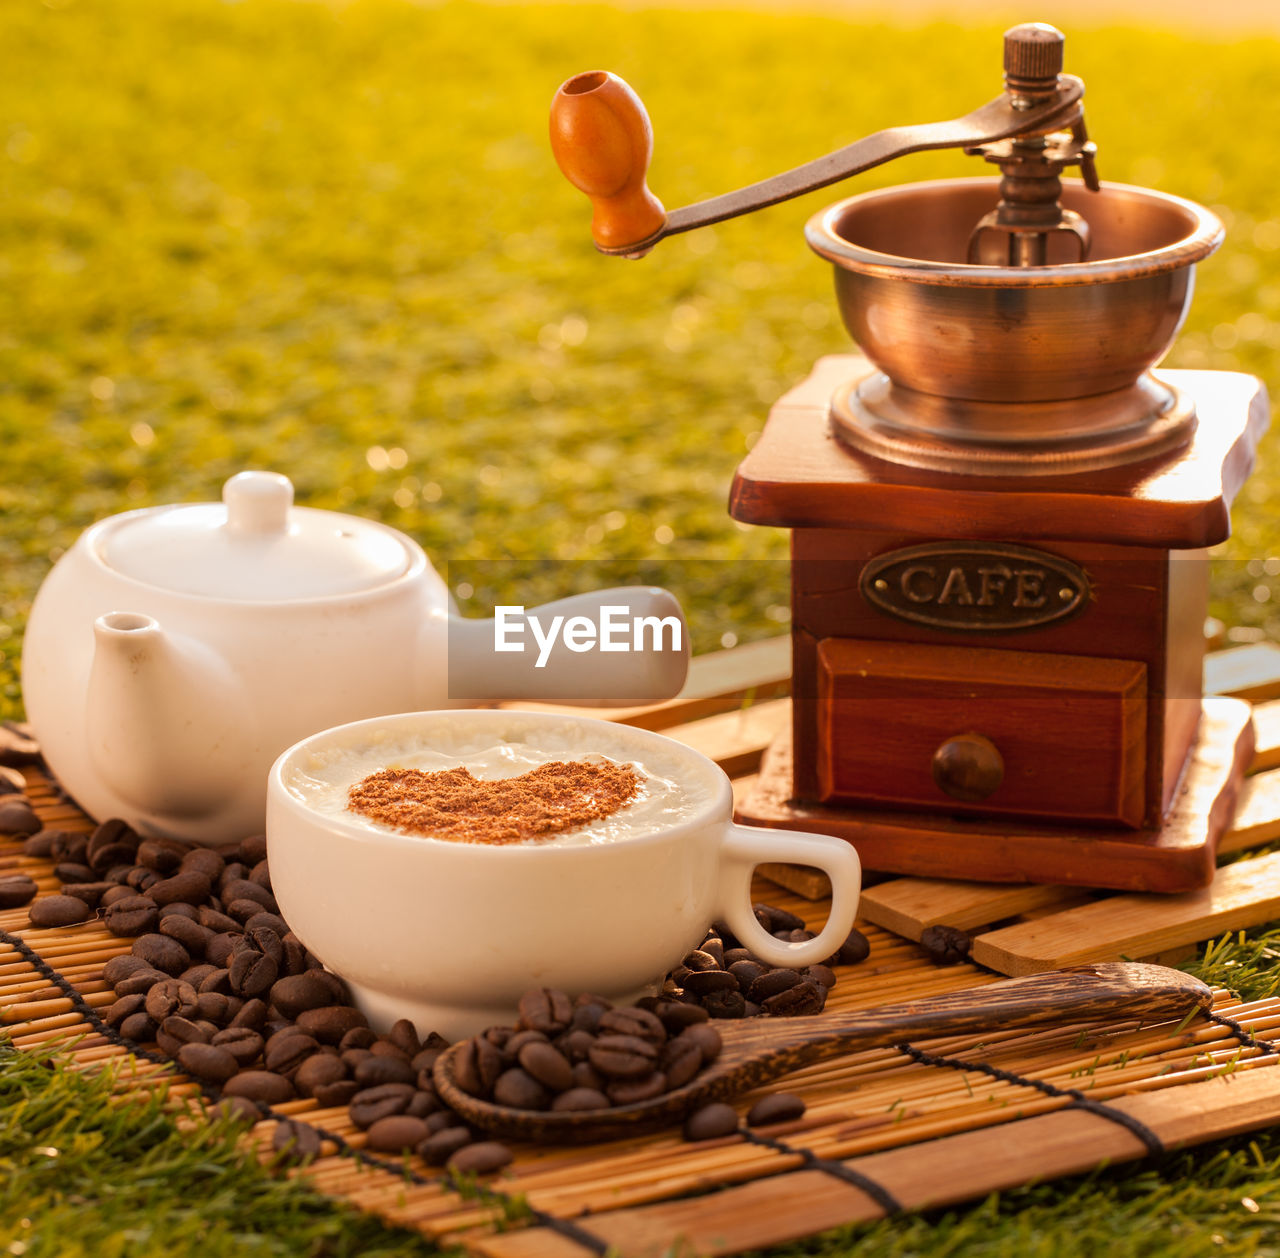 food and drink, table, cup, wood - material, no people, coffee, drink, still life, teapot, container, mug, coffee - drink, food, roasted coffee bean, plant, freshness, close-up, refreshment, coffee cup, day, crockery